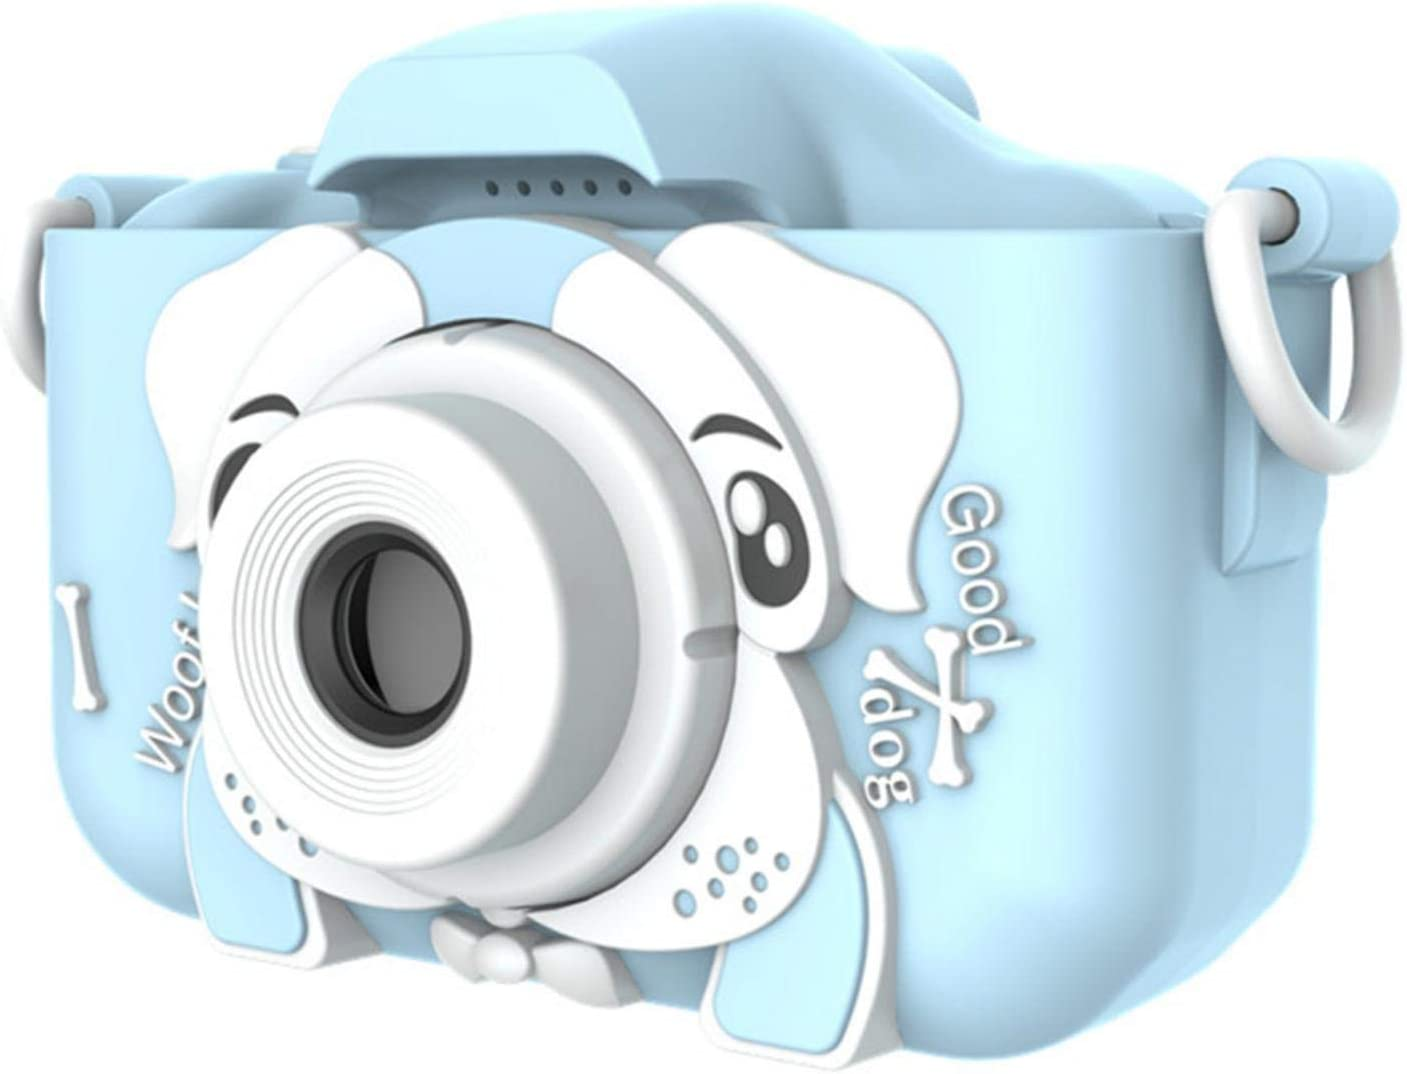 Rechargeable Kids Digital Video Toy Childrens Camera for Boys ...